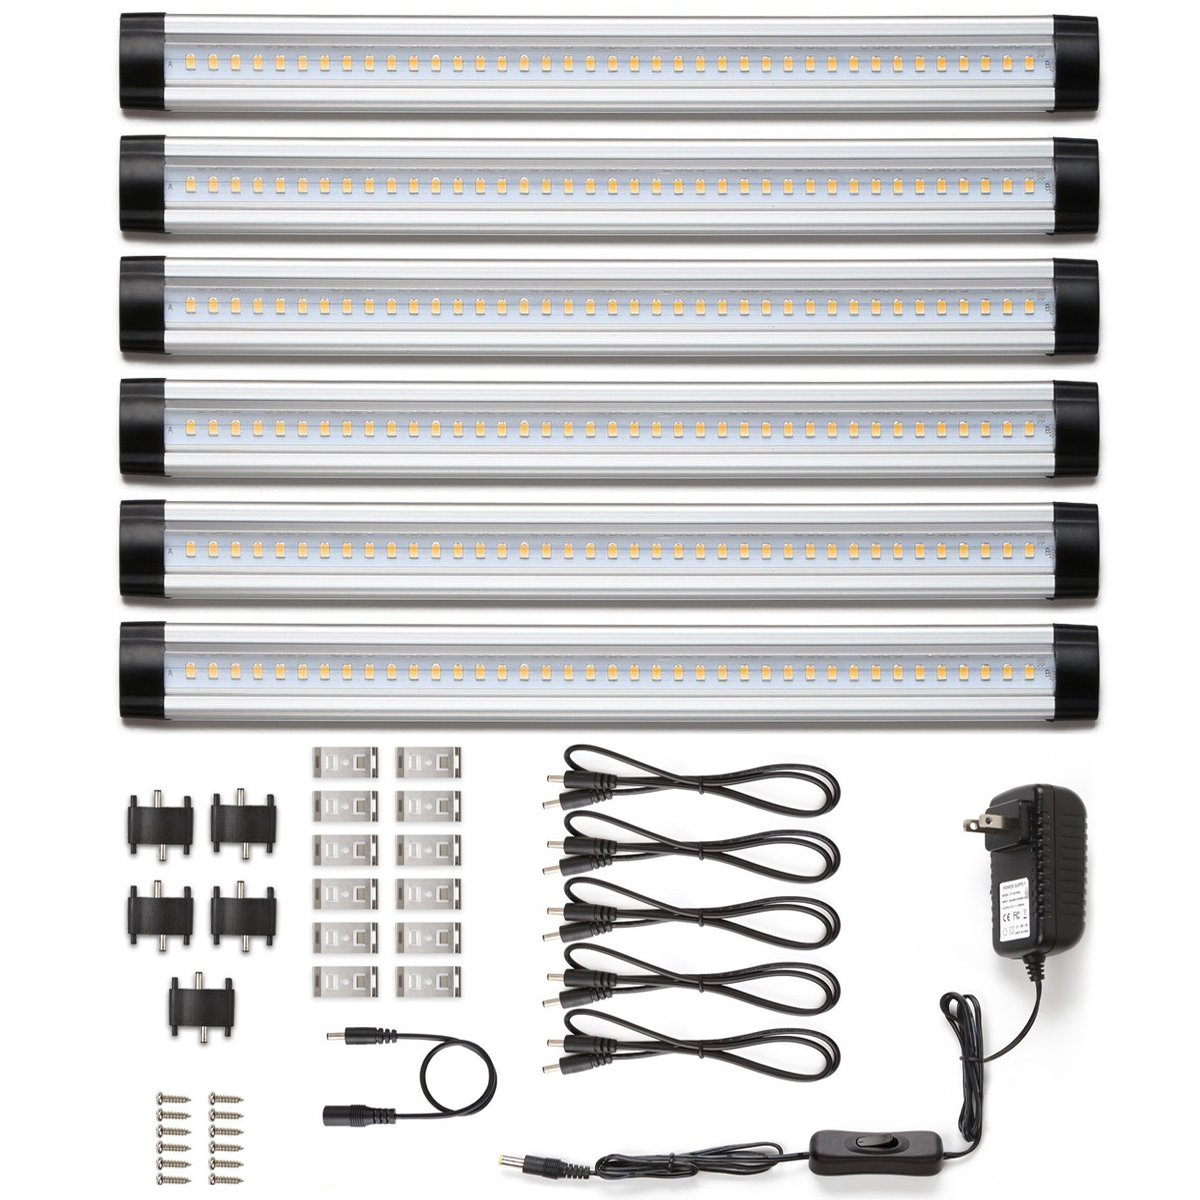 LE Under Cabinet LED Lighting, 6 Panel Kit, 24W Total, 12 V DC ...